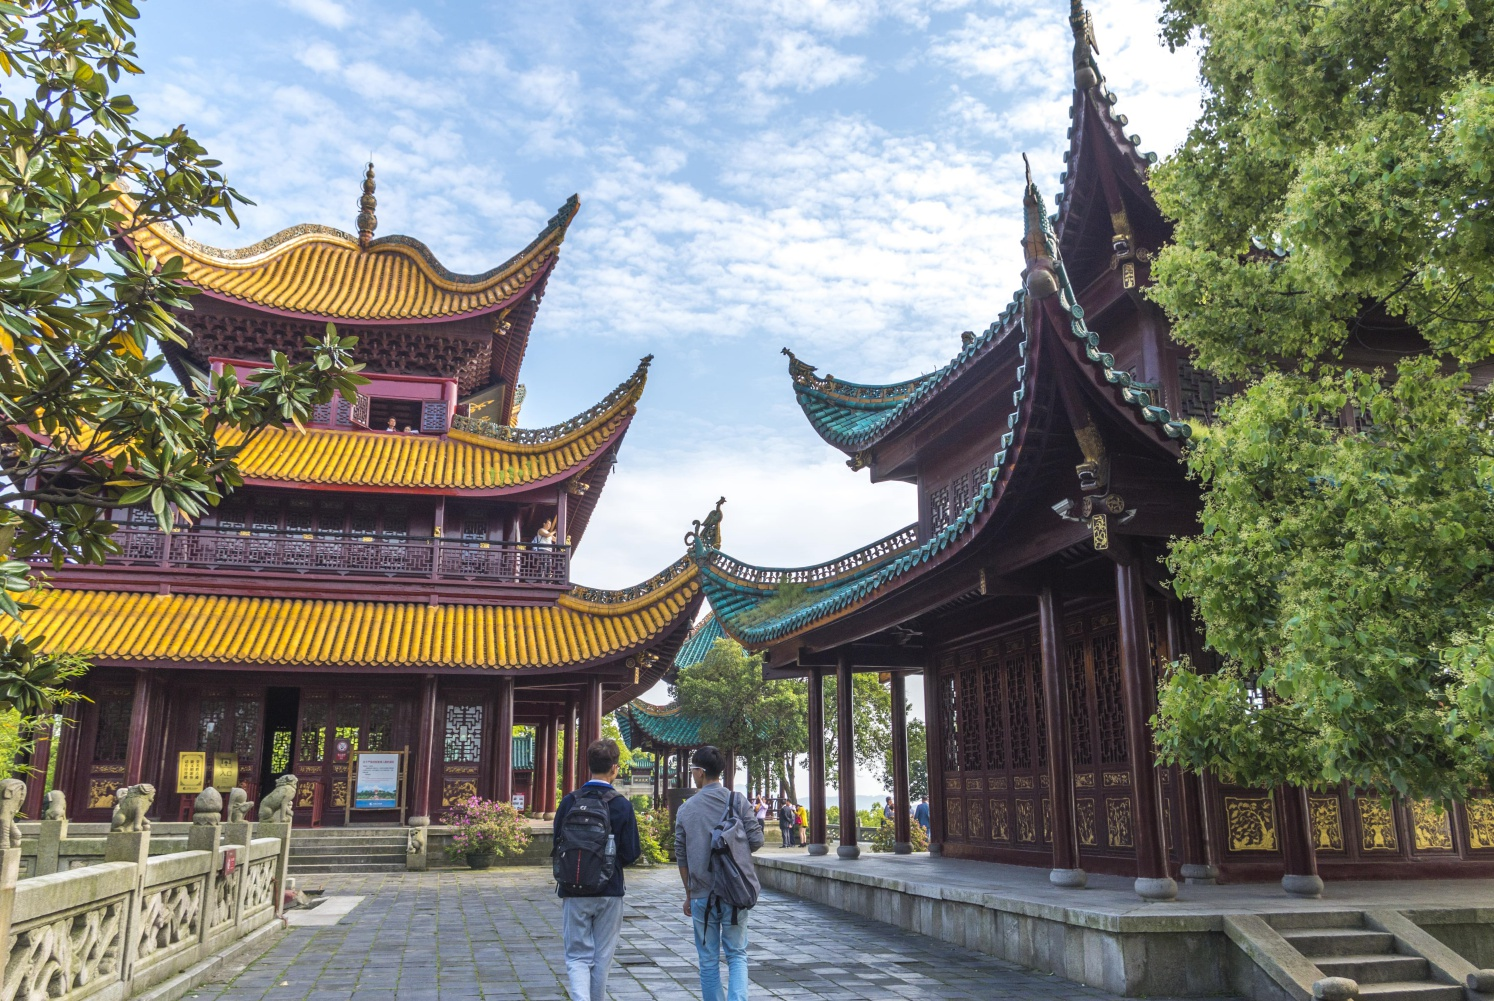 Day 10: Dongting/ Yueyang Tower - Take a tranquil boat trip on China's second largest freshwater lake, surrounded by fish, birds and mountains. Look back across the lake from Yueyang Tower, a distinctive and historic piece of ancient architecture.